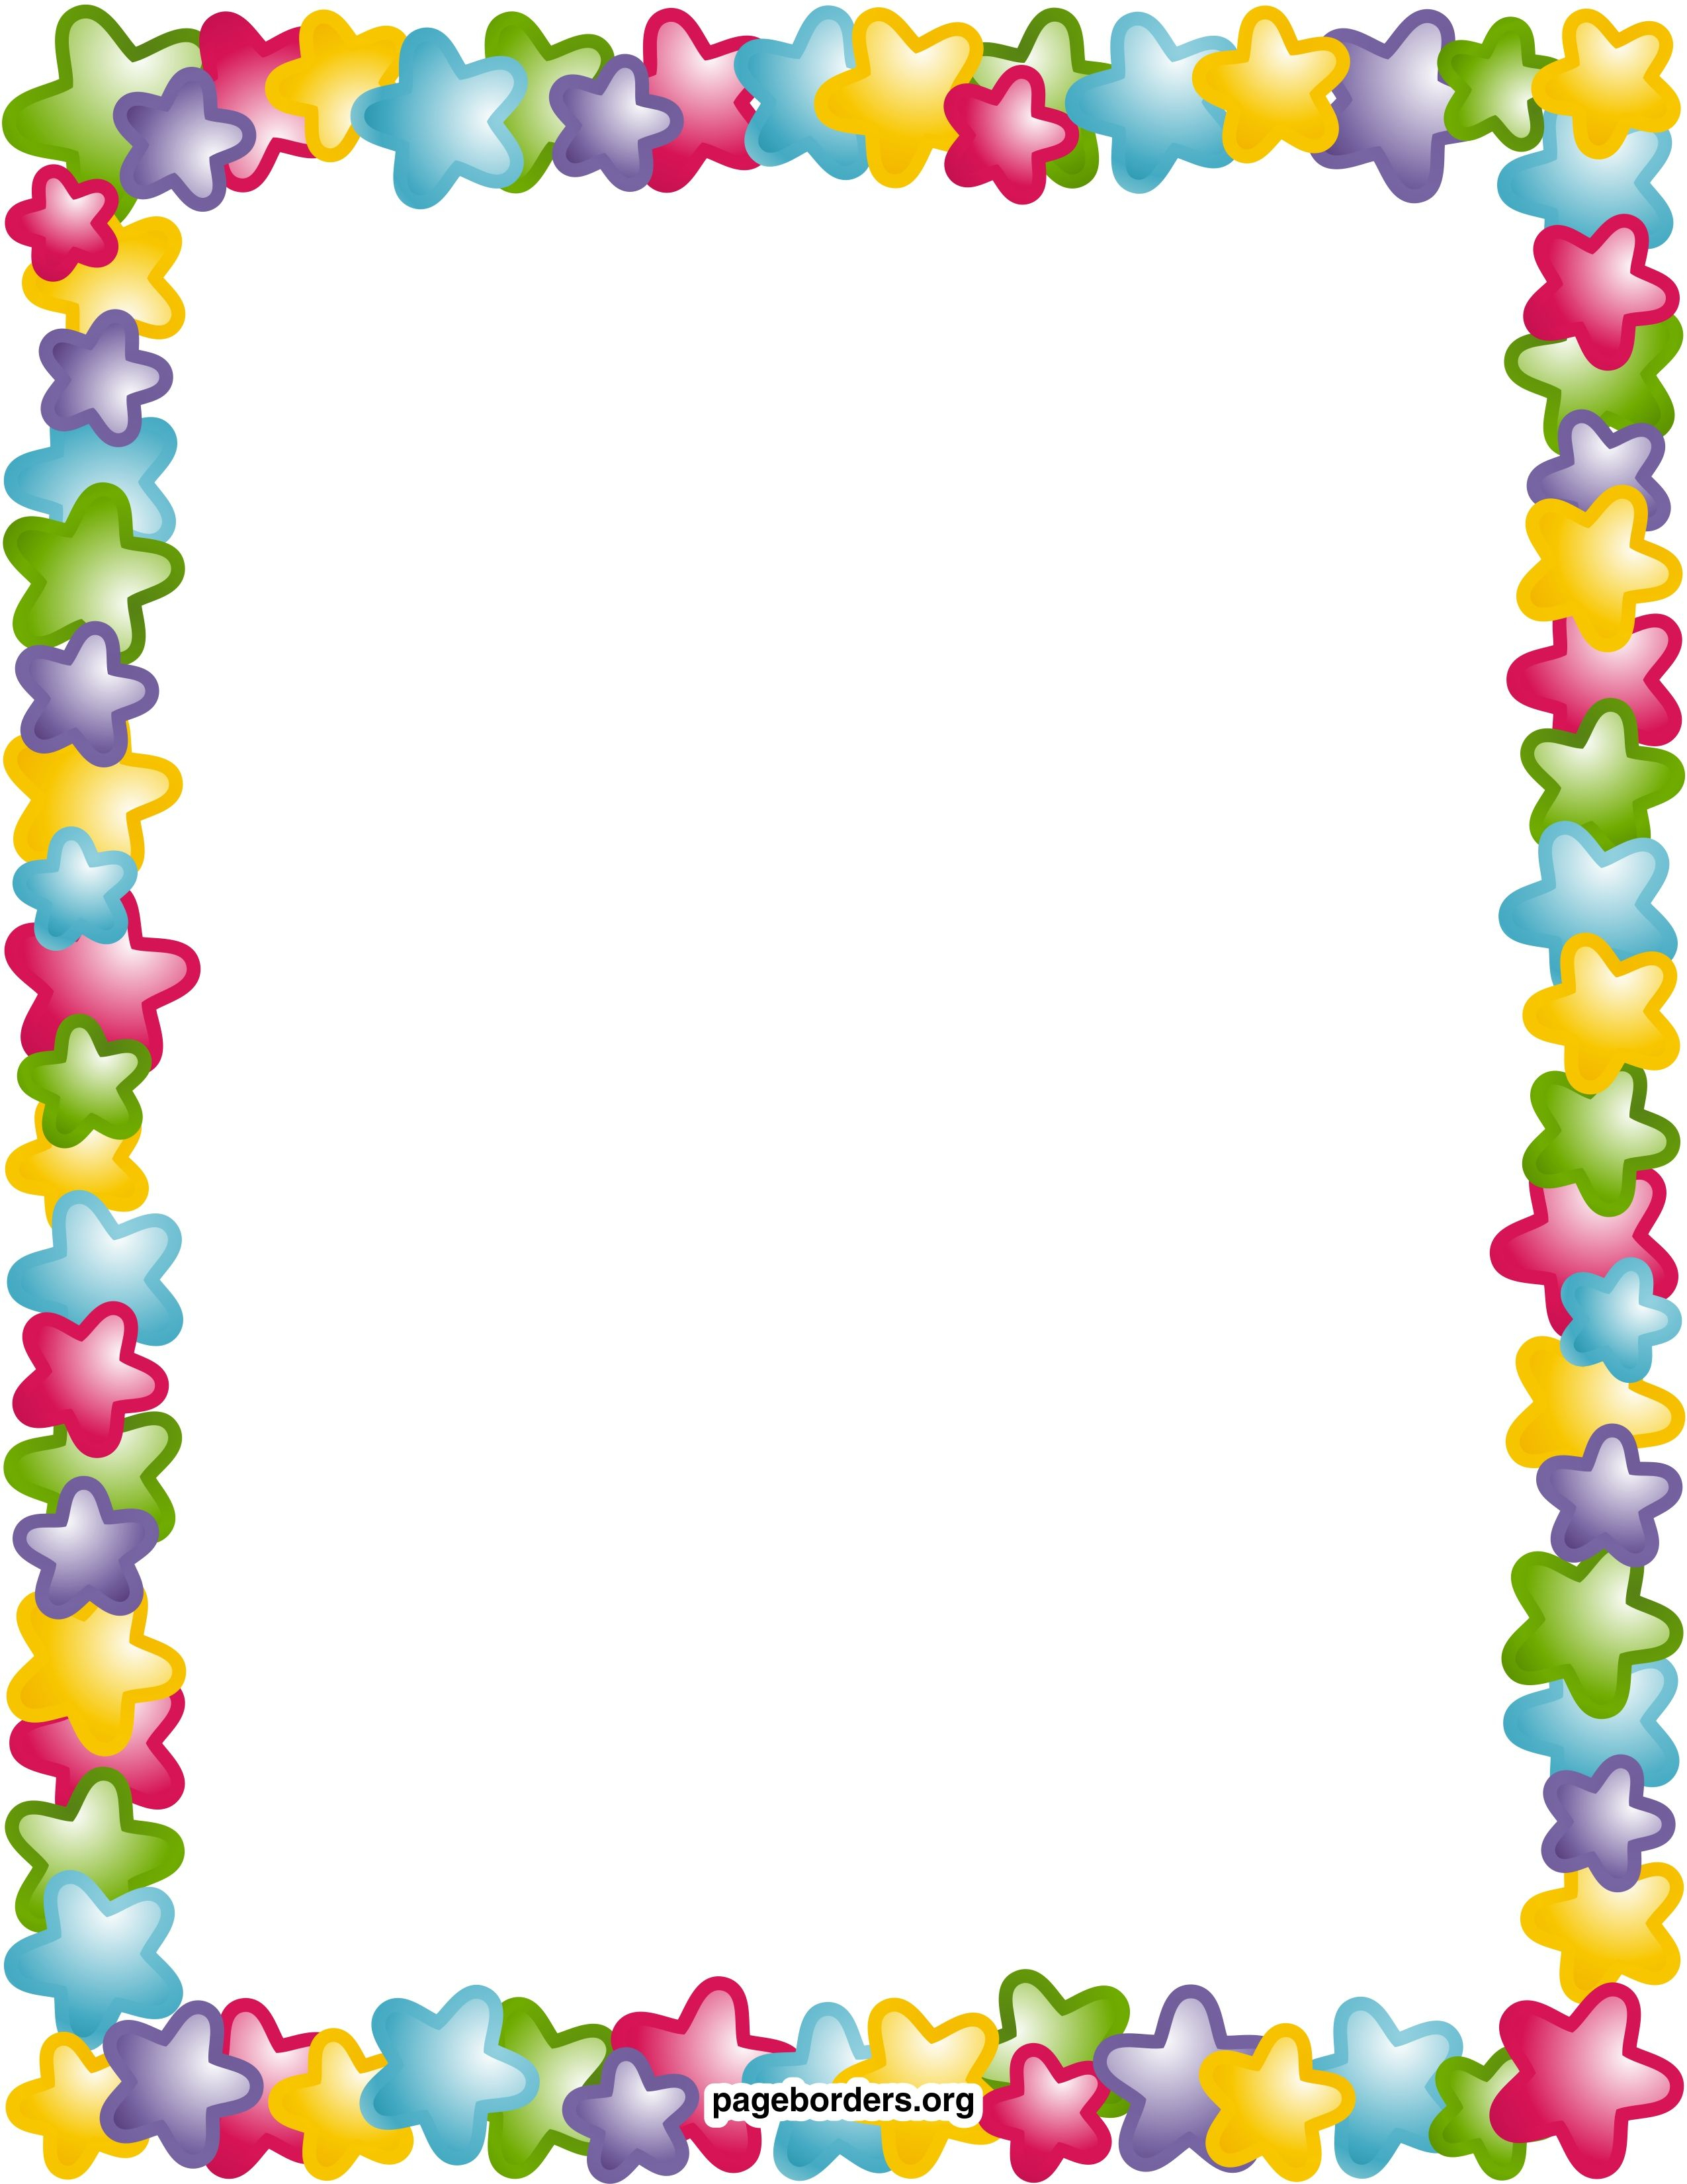 Remarkable Decoration Free Printable Borders And Frames Clip Art - Free Printable Borders And Frames